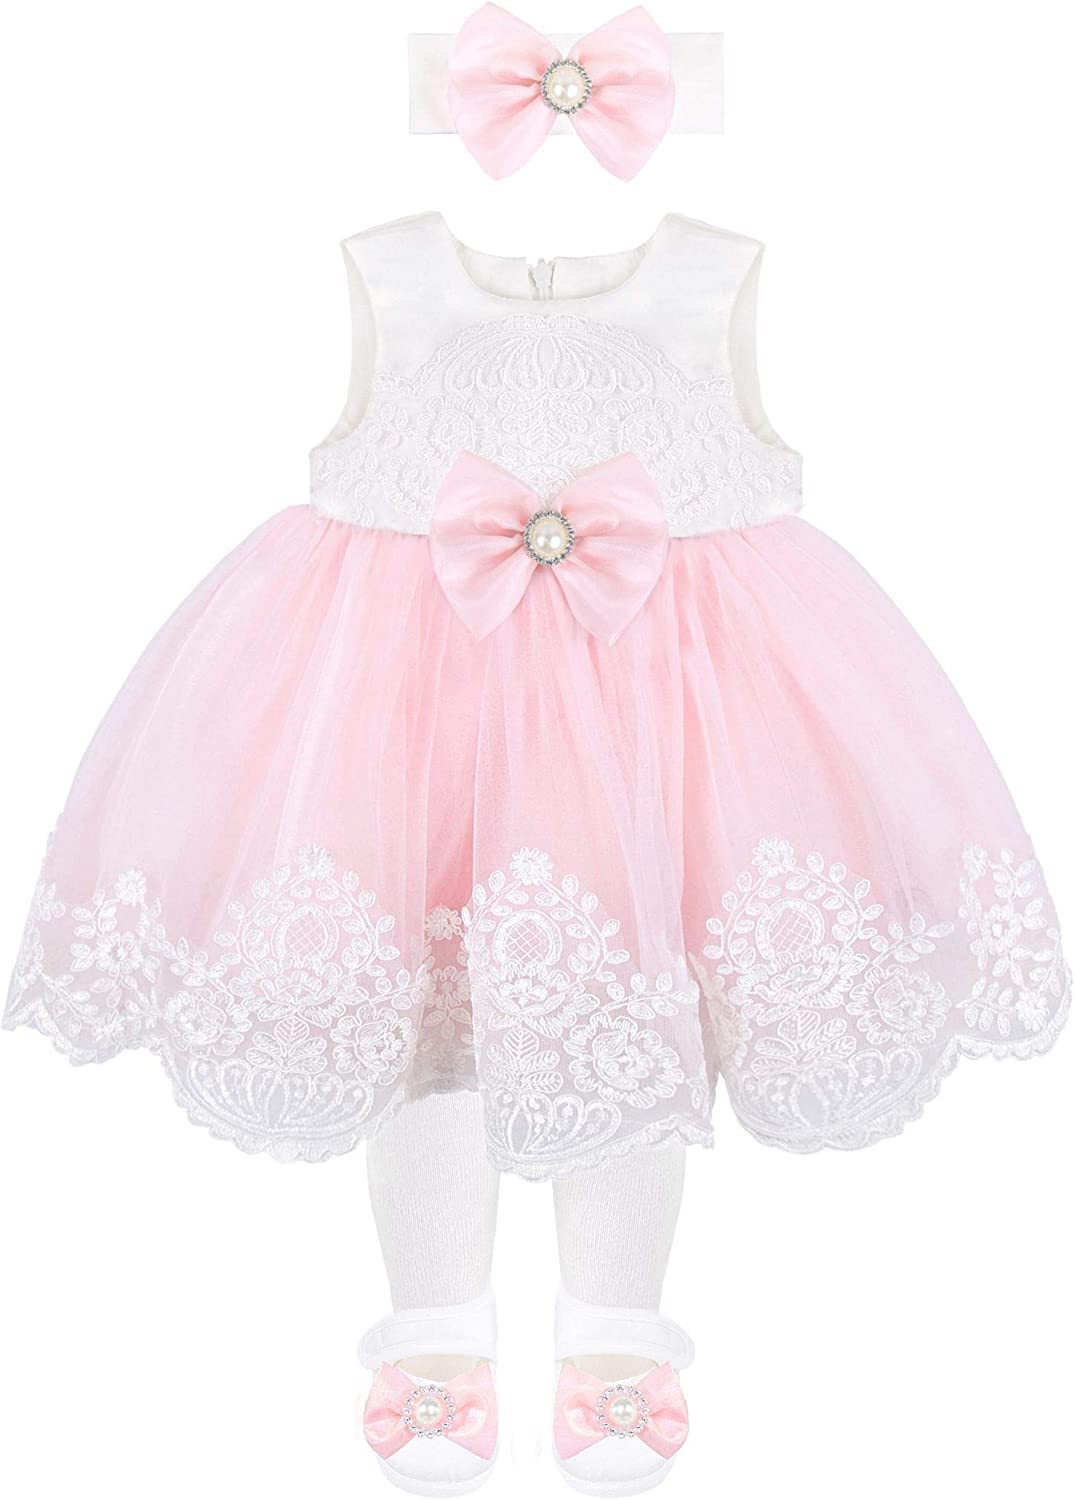 Taffy Taffy Baby Girl Newborn Pink Embroidered Princess Pageant Dress Gown 6 Piece Deluxe Set T.F